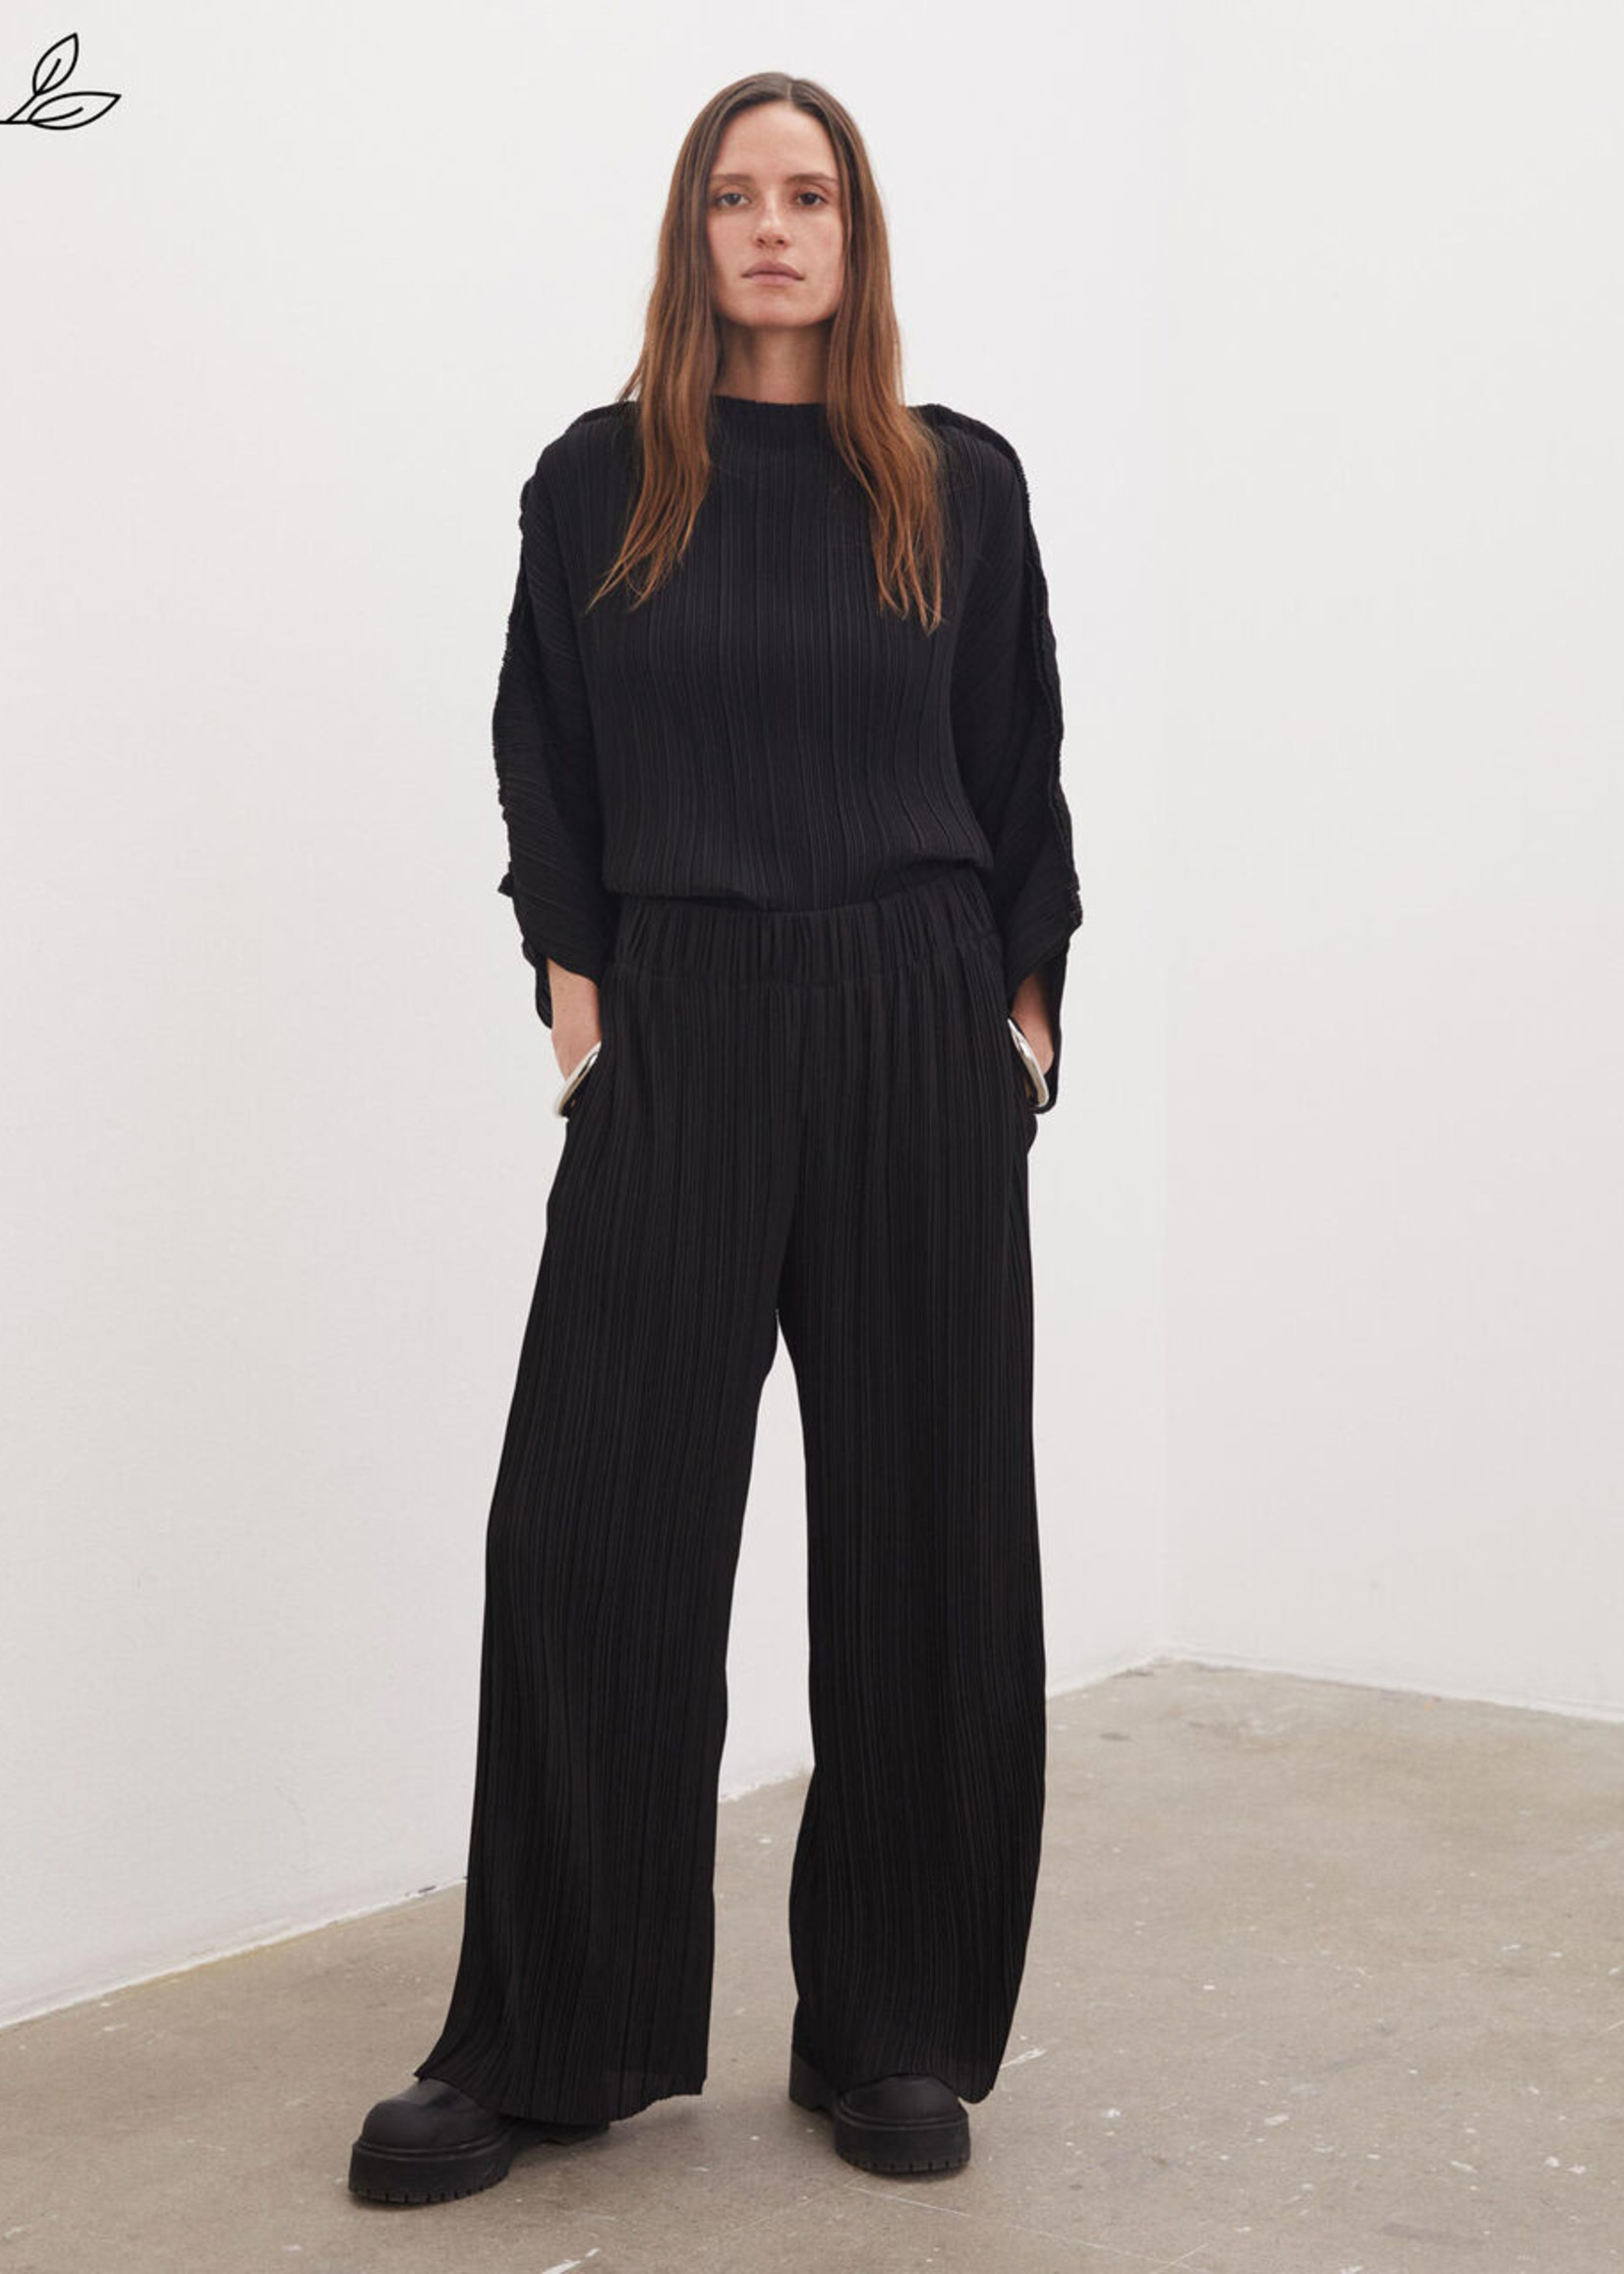 BY MALENE BIRGER LETITA RECYCLED PLISSE PANT